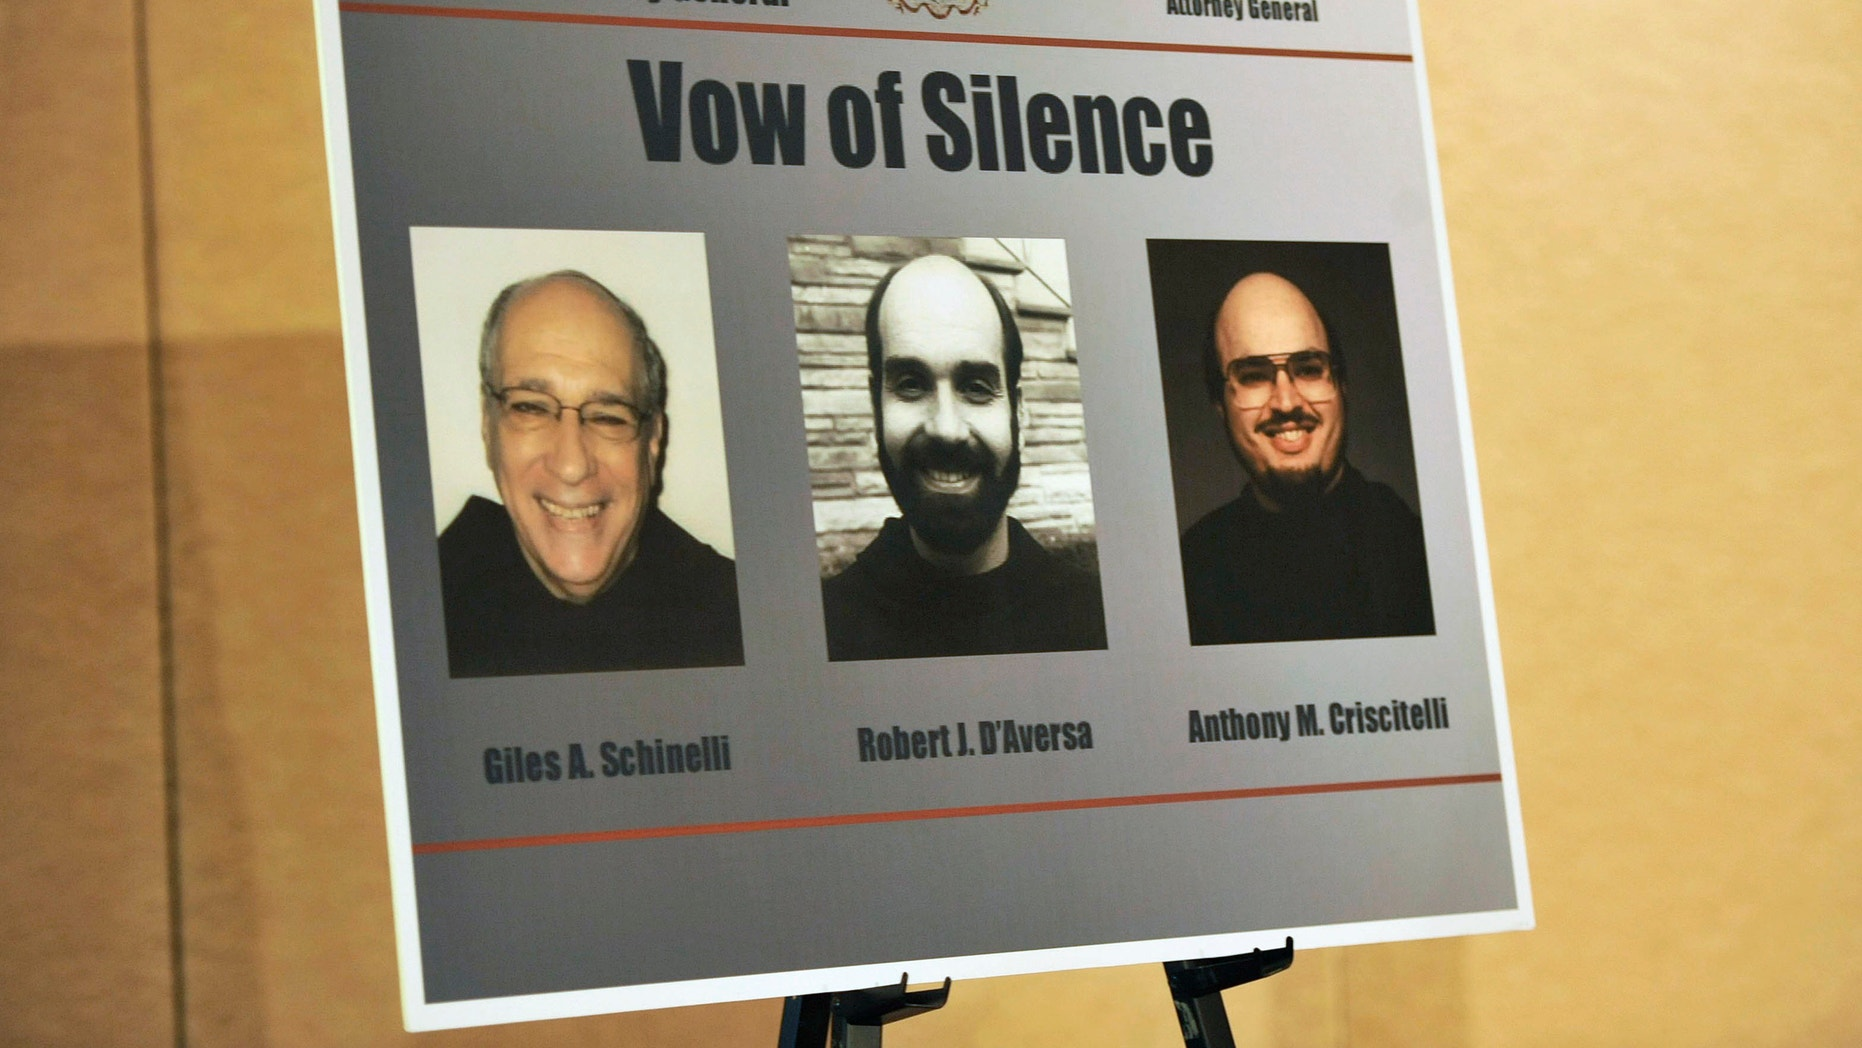 A poster from the Pennsylvania State Attorney General with the images of three ex-leaders of the Franciscan religious order.